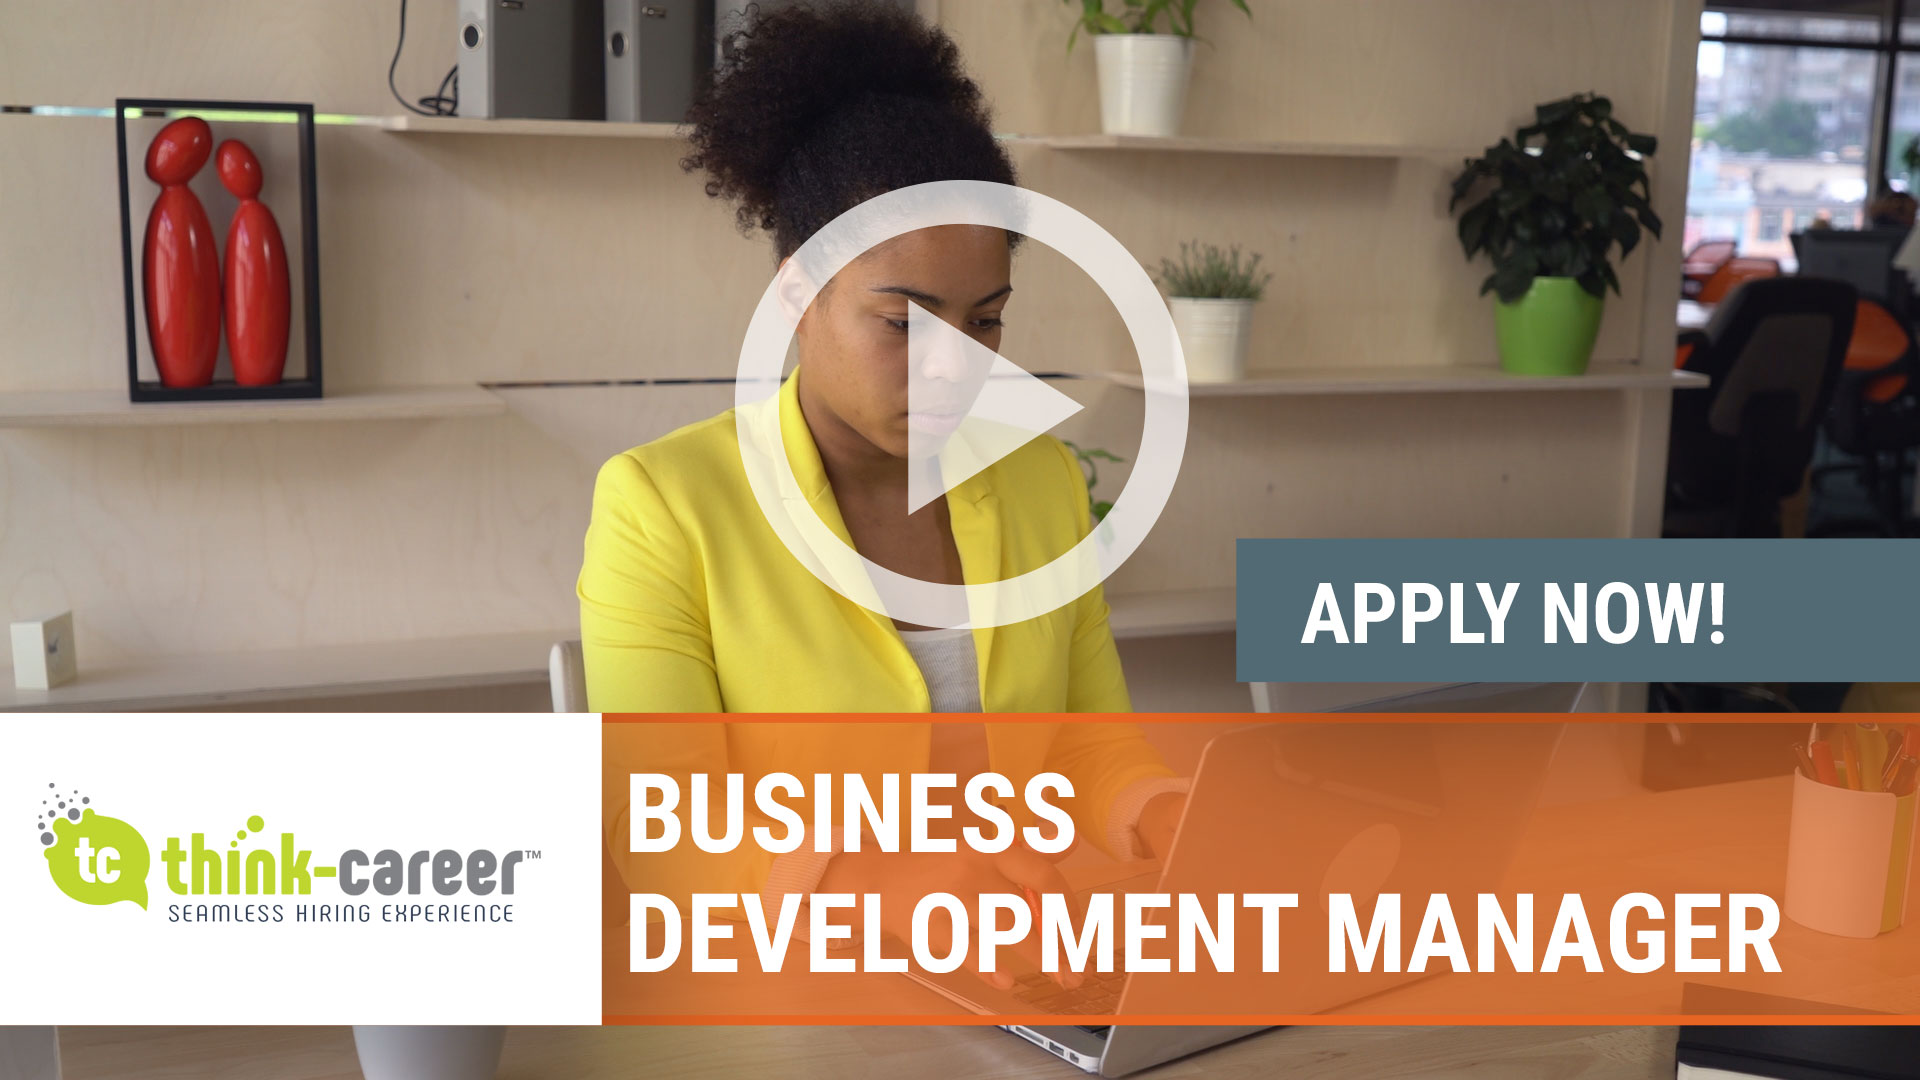 Watch our careers video for available job opening Business Development Manager in Fourways, Gauteng